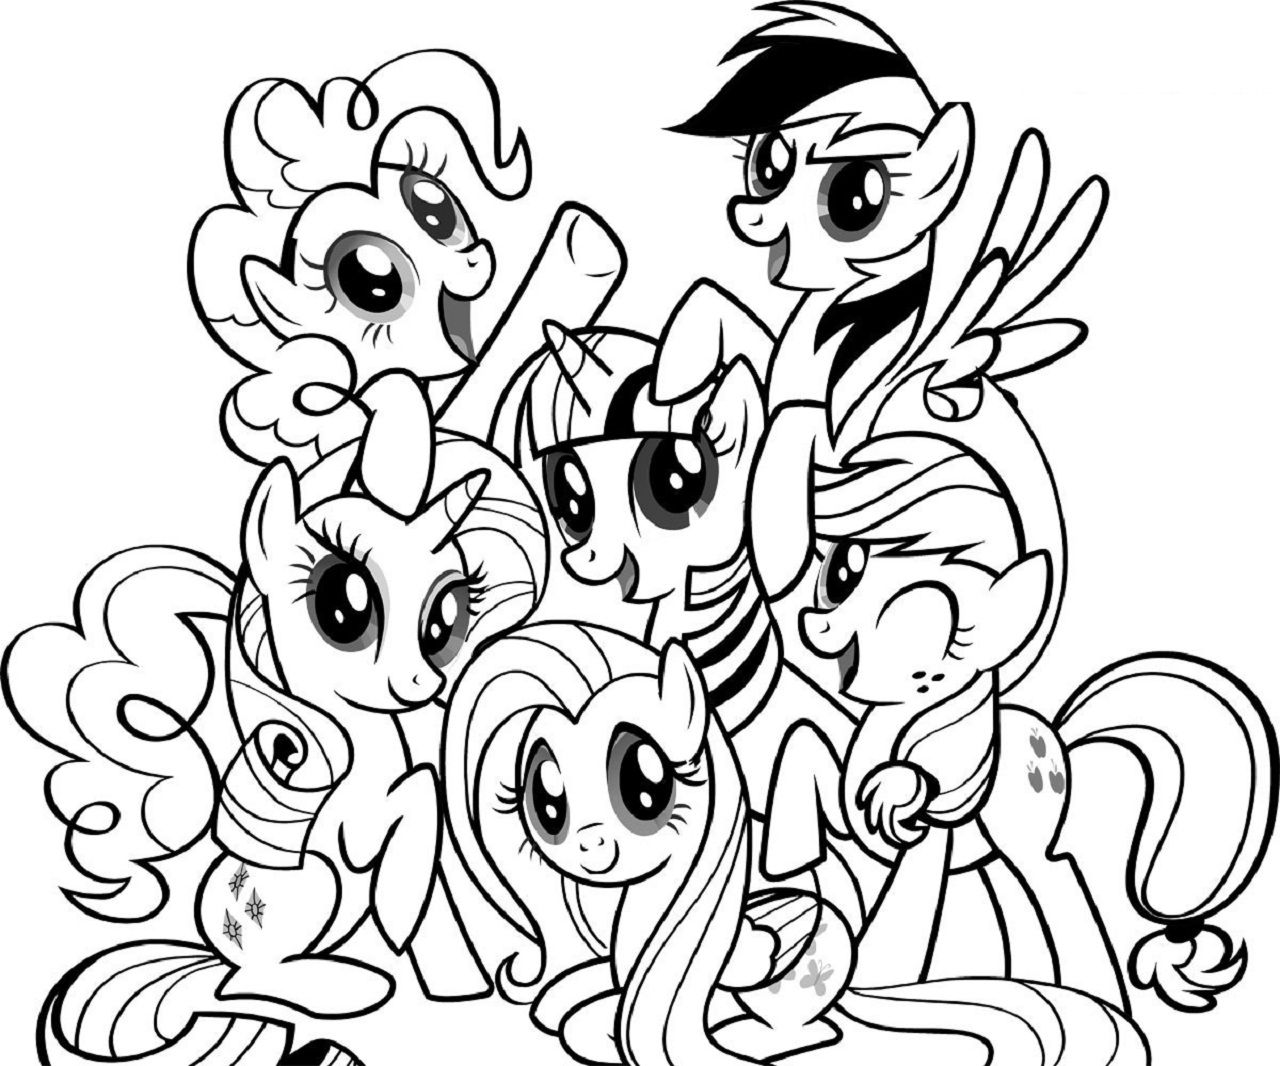 My Little Pony Coloring Pages Printable My Little Pony Coloring My Little Pony Printable Unicorn Coloring Pages